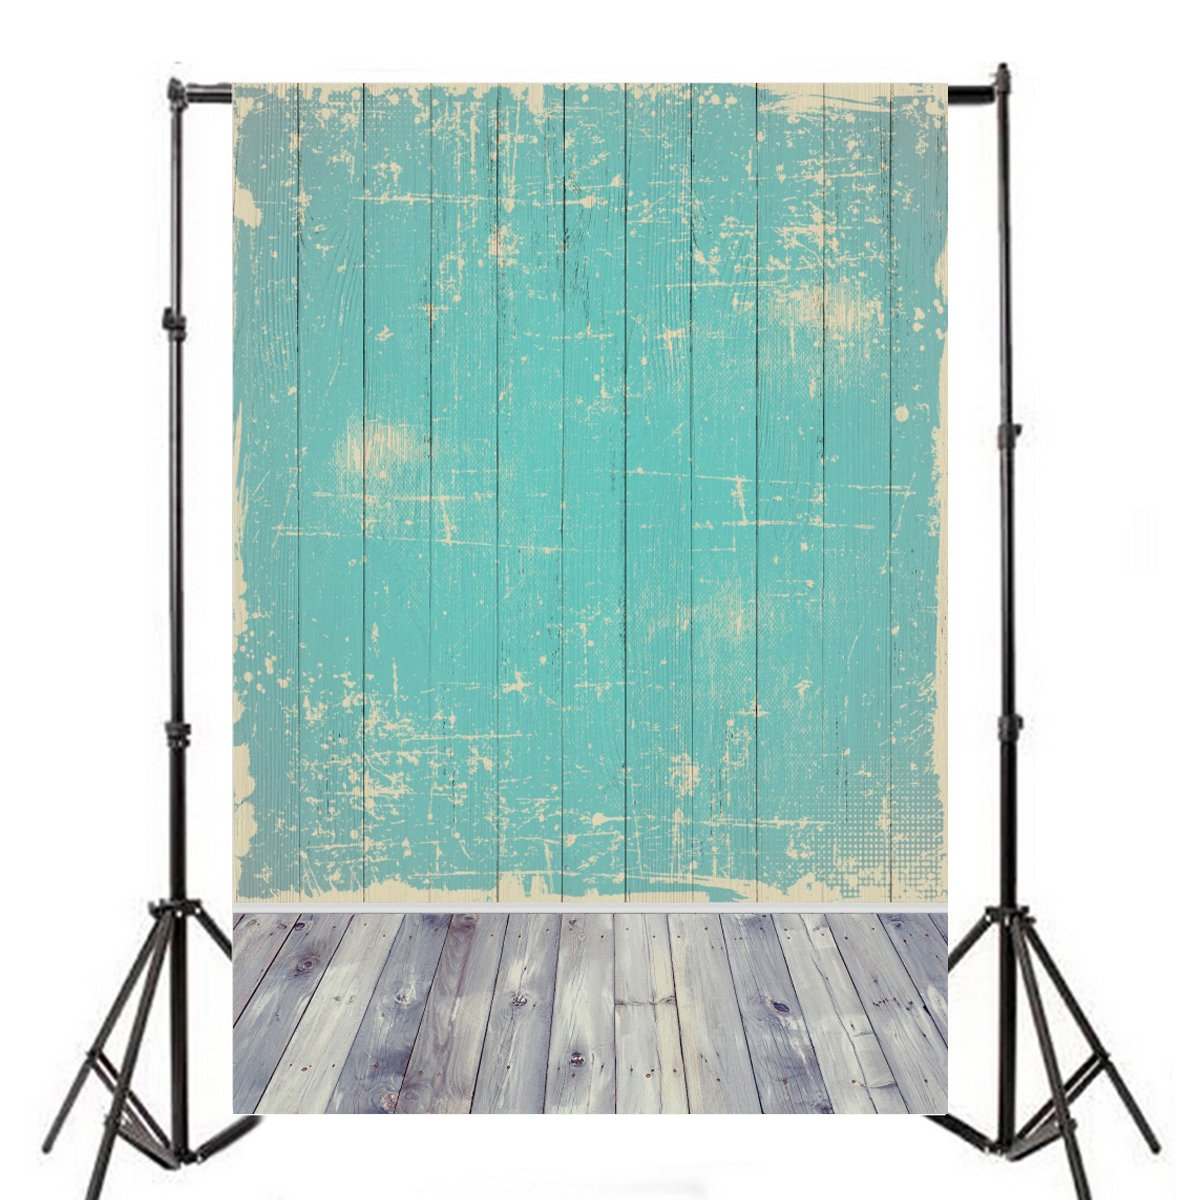 Yeele 6x9ft Old Vintage Shabby Blue Wood Floor Photography Backdrop Vinyl Grunge Wooden Plank Nostalgia Peeling Weathered Hardwood Board Pattern Background Photo Video Studio Props Drape Wallpaper